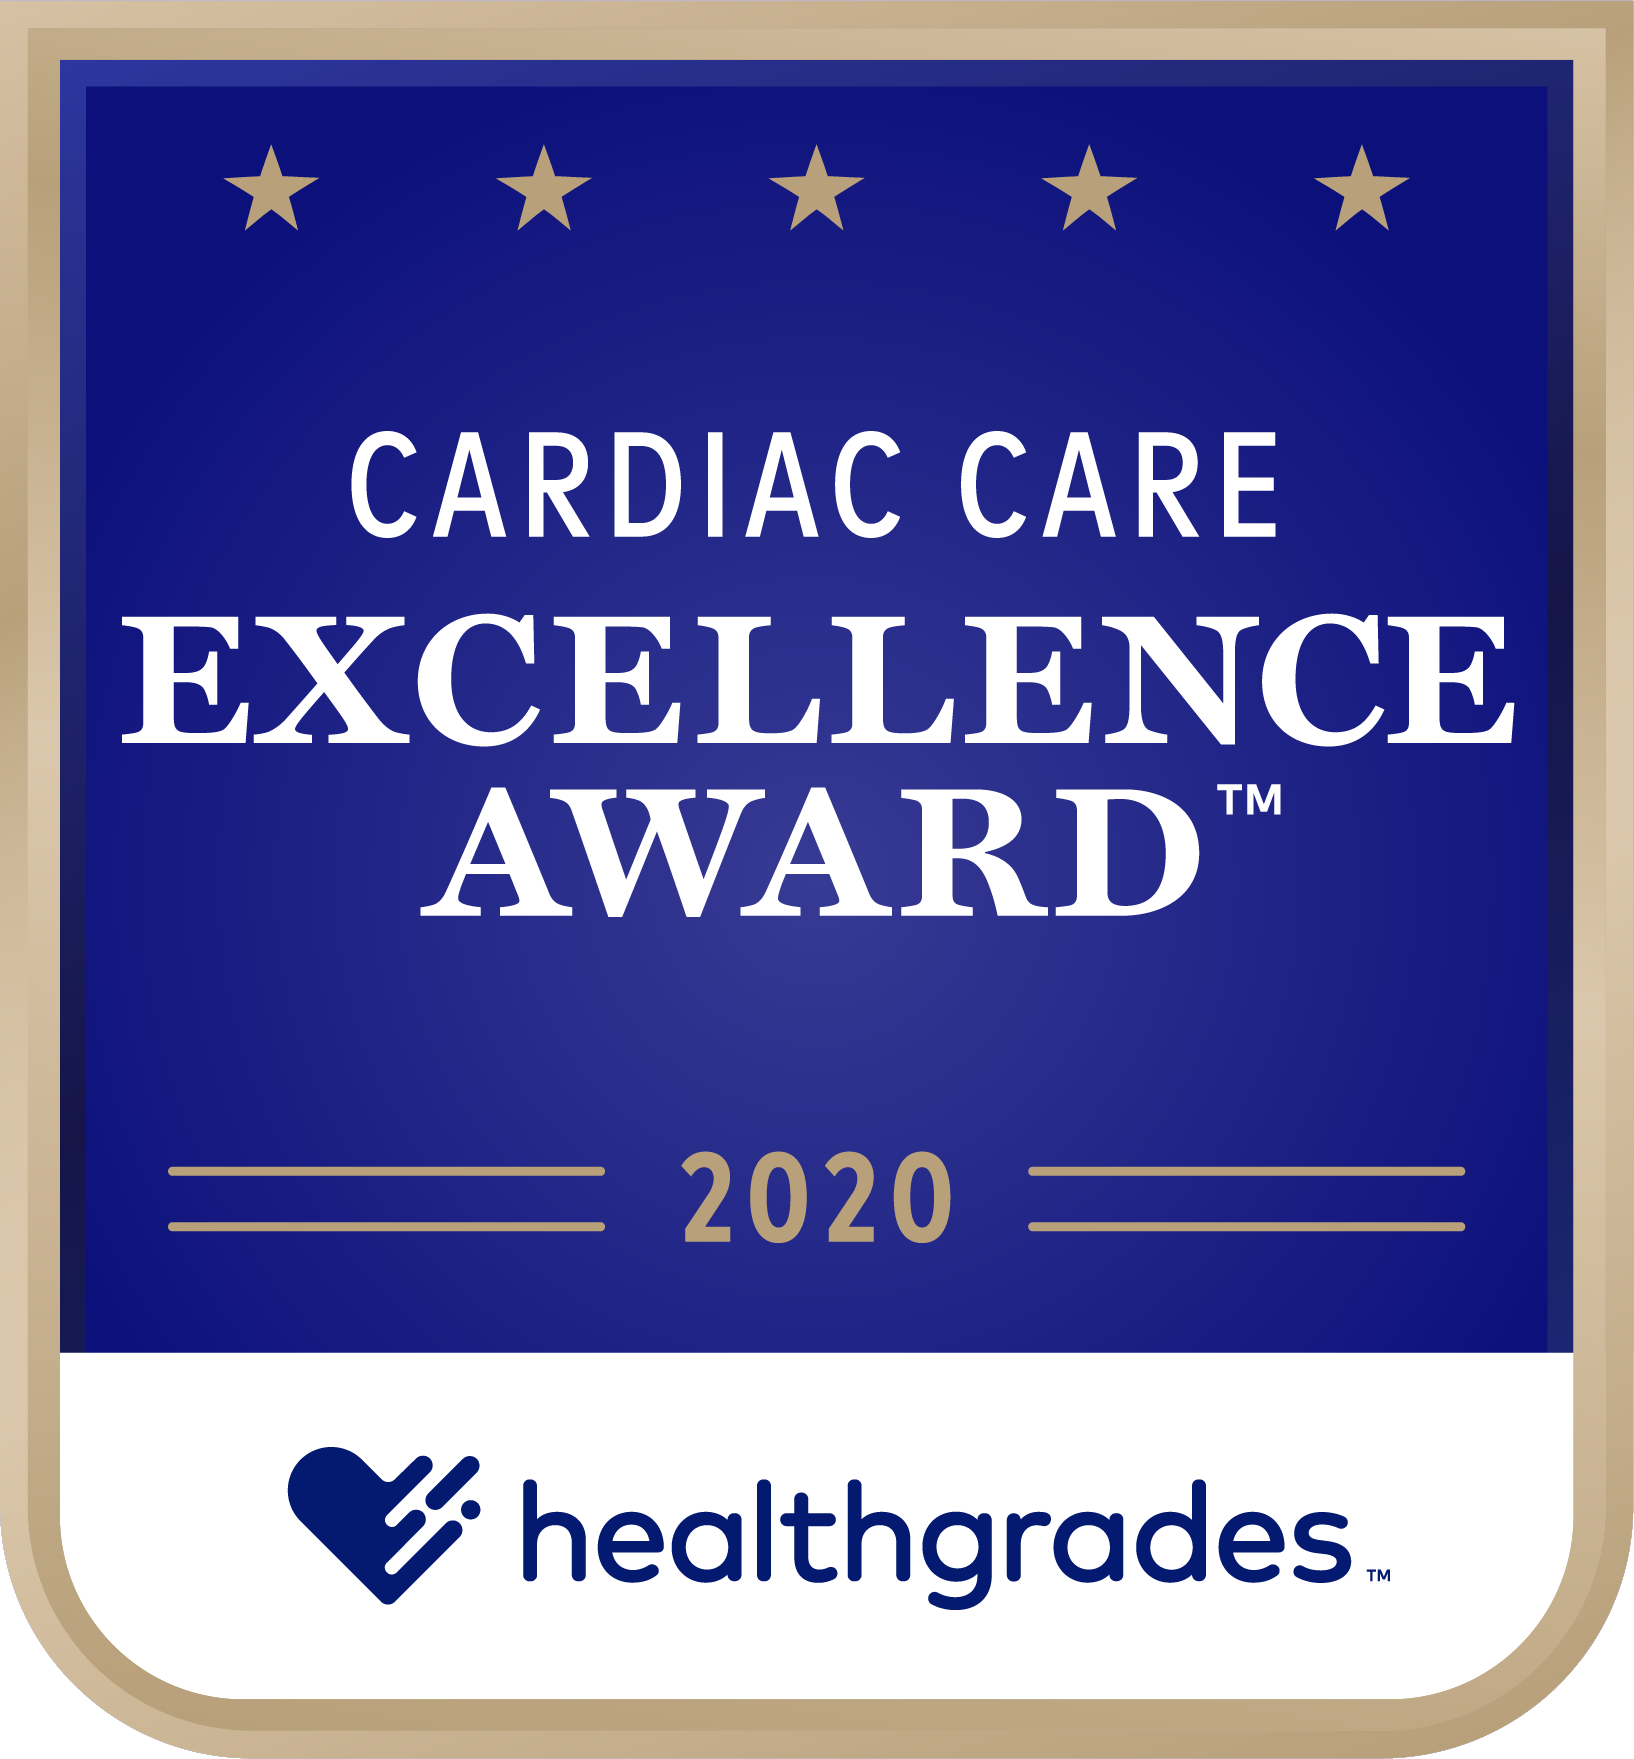 Healthgrades Cardiac Care Excellence Award